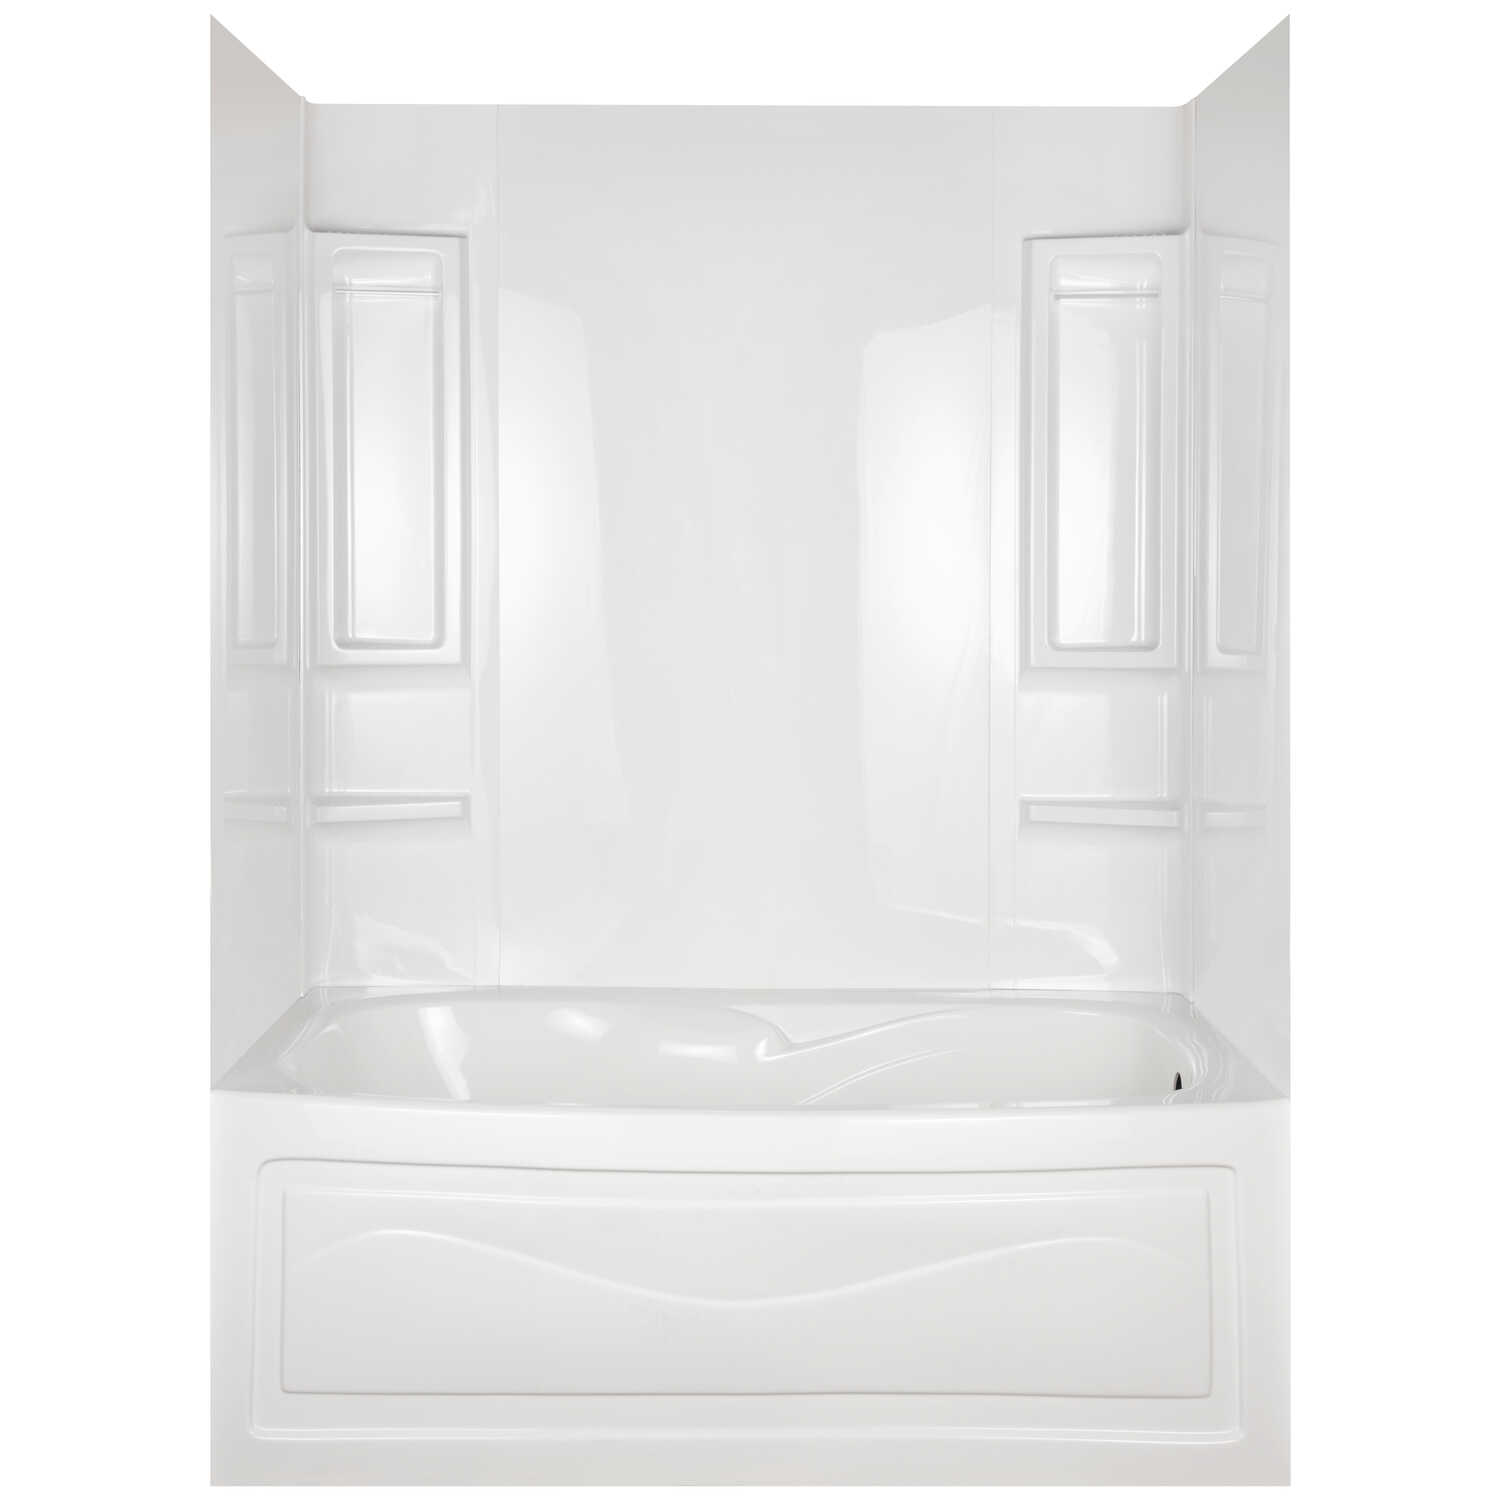 ASB  Vantage  Five Piece  Right  Rectangle  Bathtub Wall